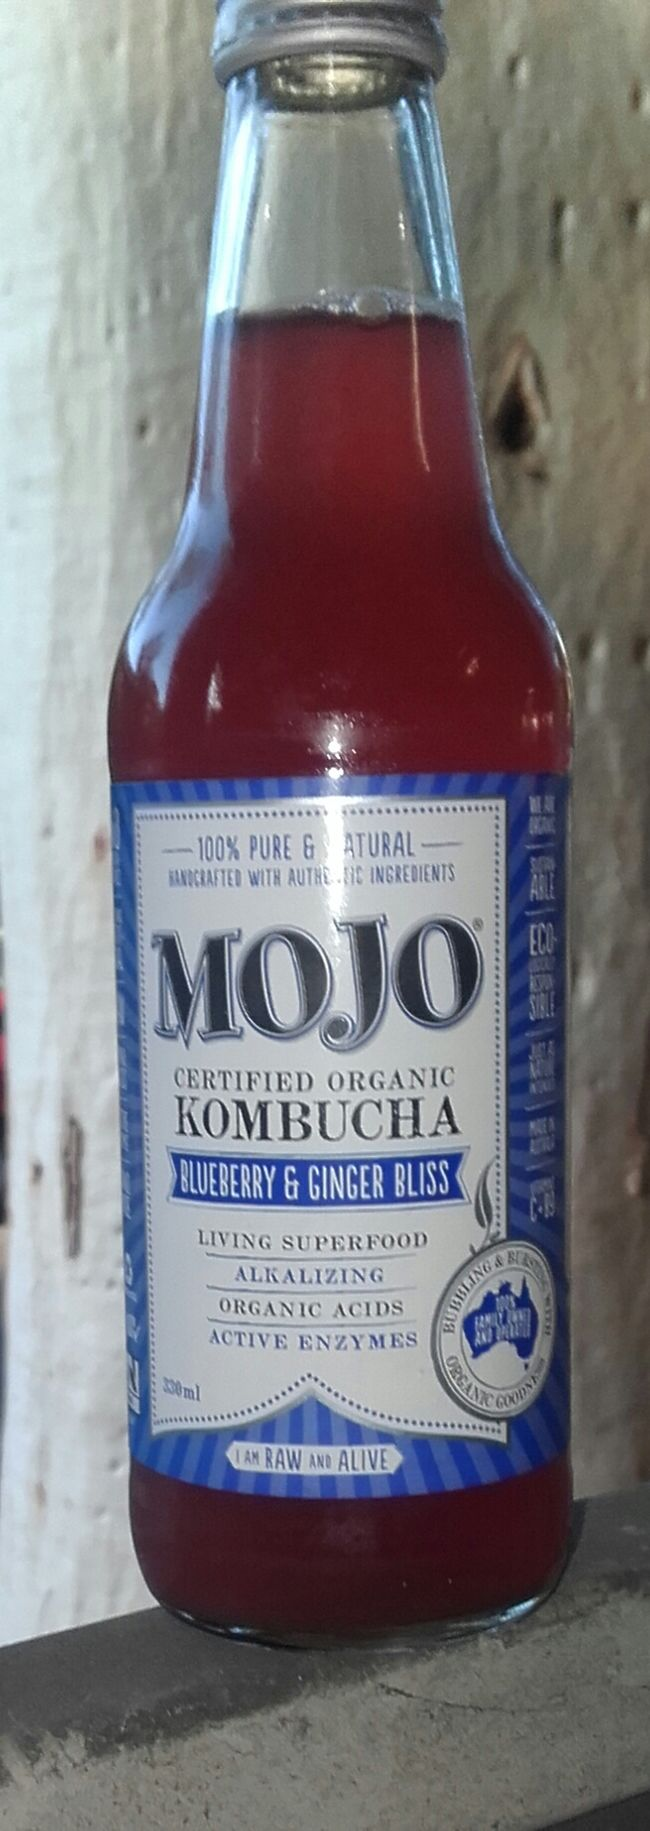 Mojo Kombucha Elixir I Got My Mojo Back Blueberry & Ginger Bliss Certified Organic FirstThing Active Enzymes Probiotic Alkalizing Organic Acids Superfood Mojoporn Bottles 100% Natural Organic Kombucha 100% Pure Non-alcoholic Drinks And Bottles Ecologically Responsible Vitamin C Drinks Vitamin B9 Blueberry & Ginger